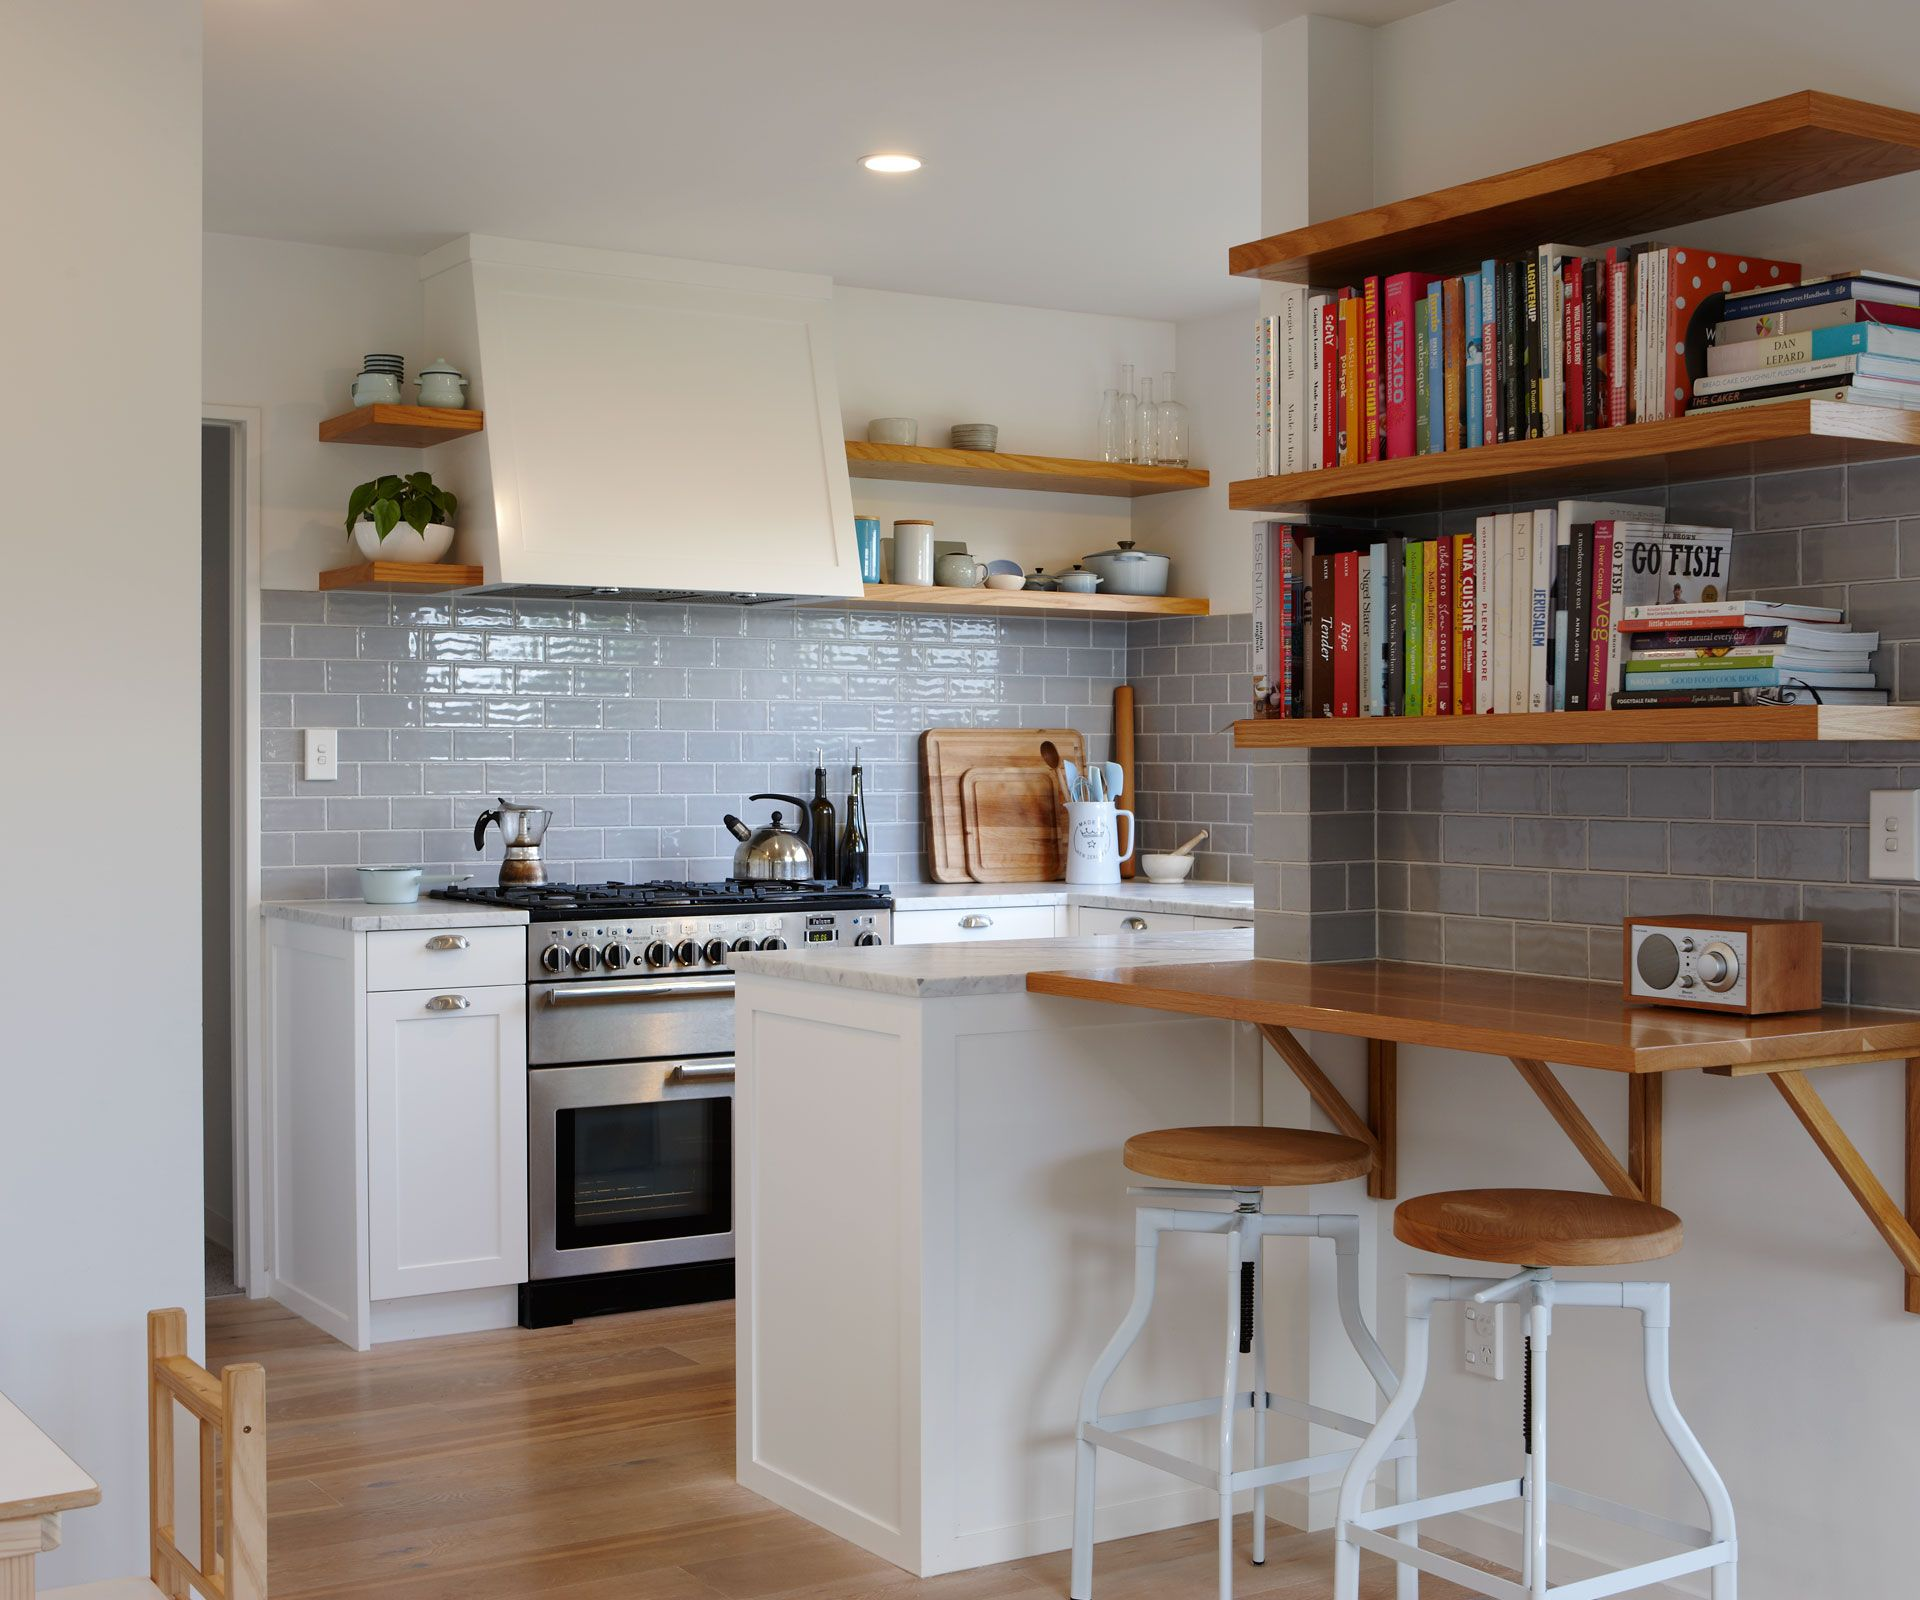 This Kitchen Renovation Balances Modern Design With Character Features